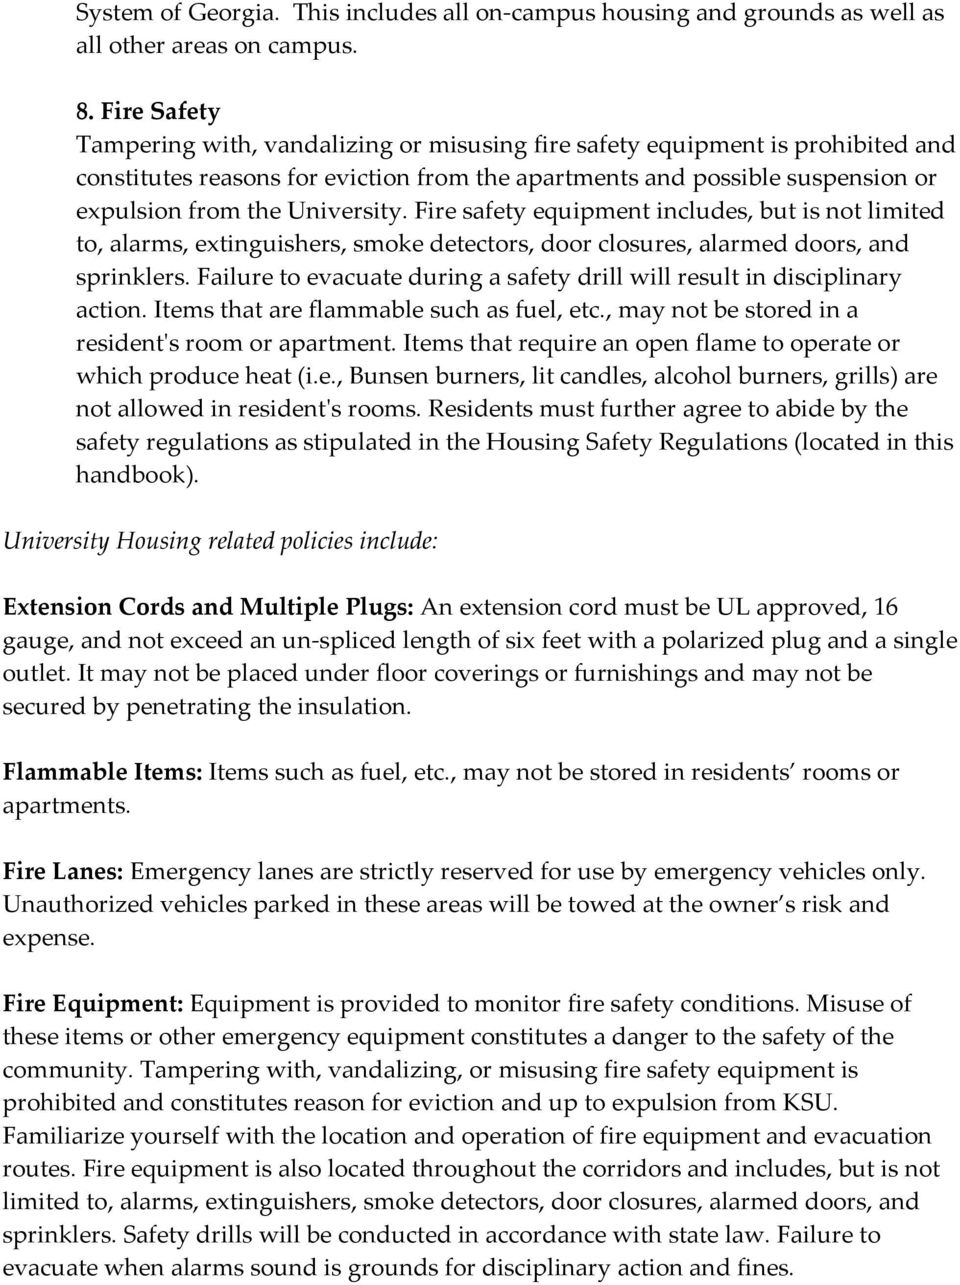 University. Fire safety equipment includes, but is not limited to, alarms, extinguishers, smoke detectors, door closures, alarmed doors, and sprinklers.